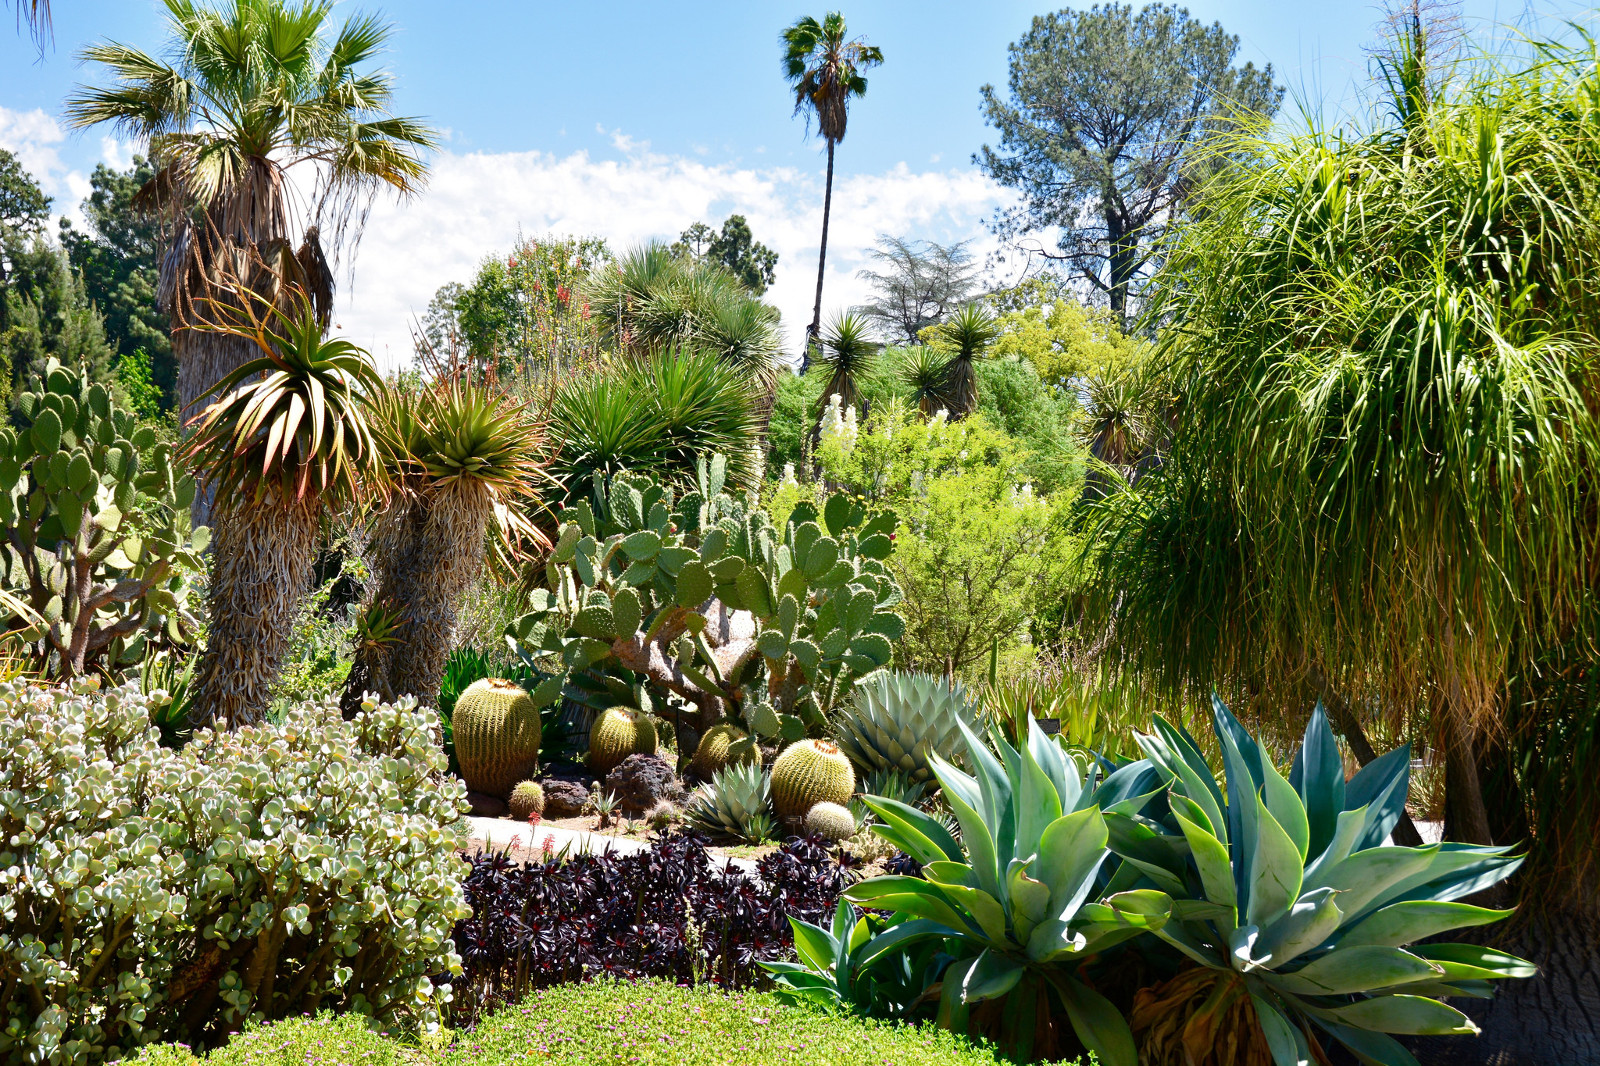 How To Create A Sunken Garden Bed When Raised Beds Don T Make Sense For Your Environment One Green Planet